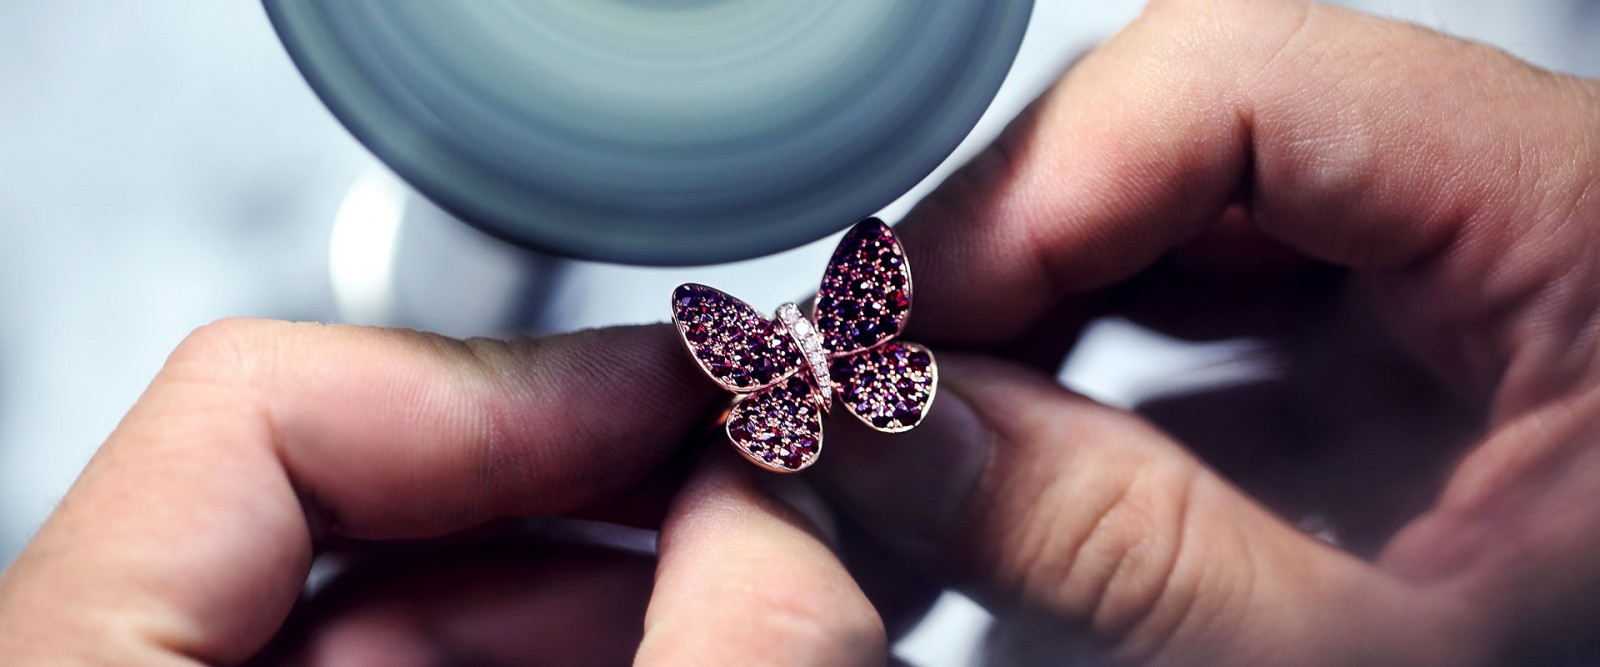 Perfect jewelry polishing and final touches